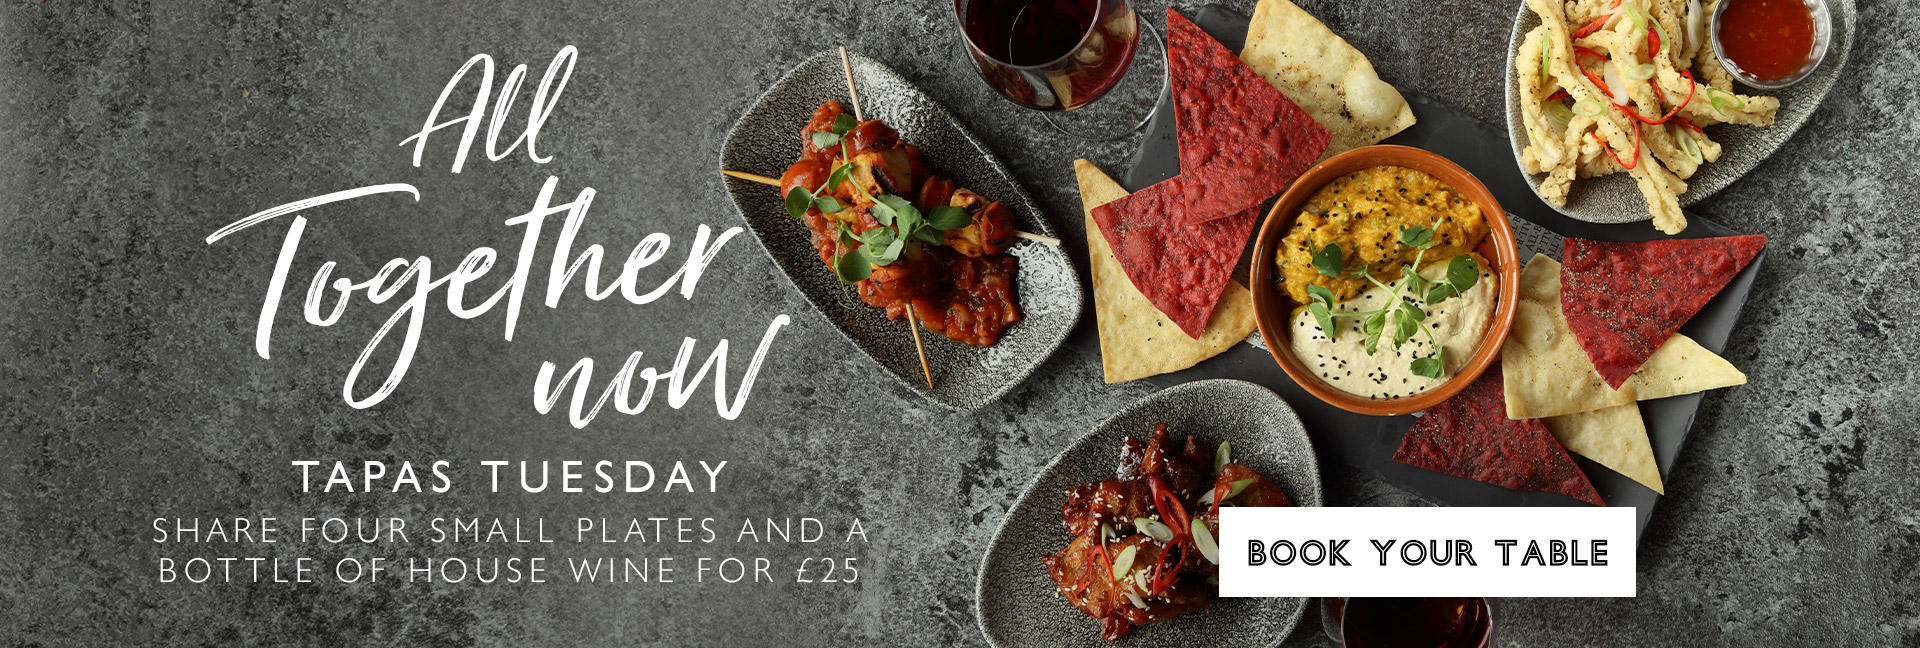 Tapas Tuesday at All Bar One Leicester Square - Book now